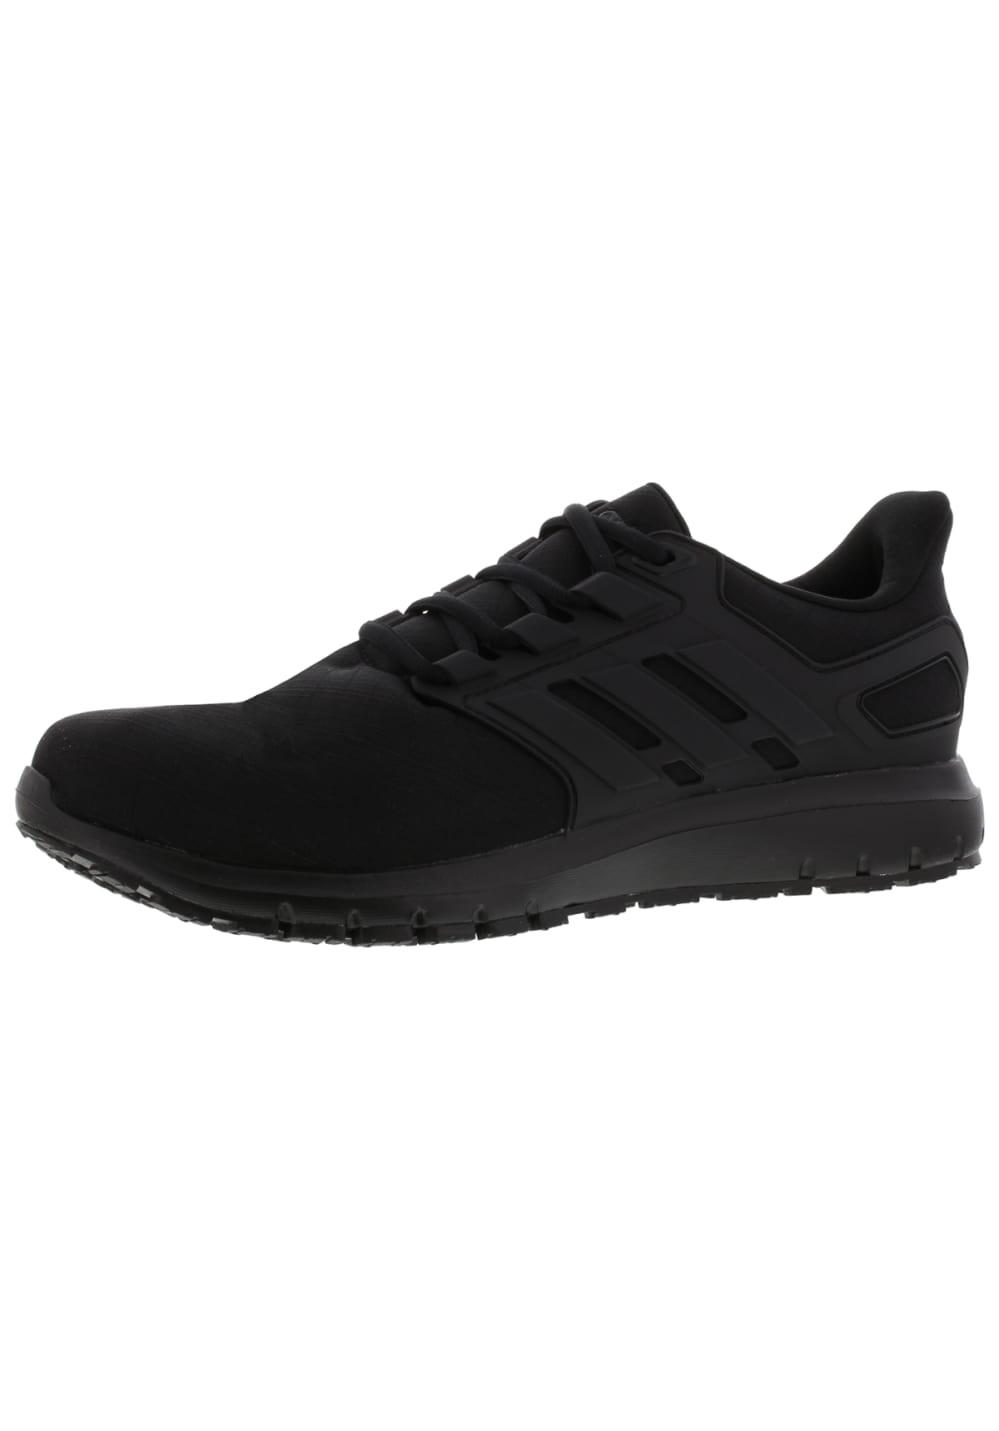 revendeur c54c6 5773d adidas Energy Cloud 2 - Running shoes for Men - Black